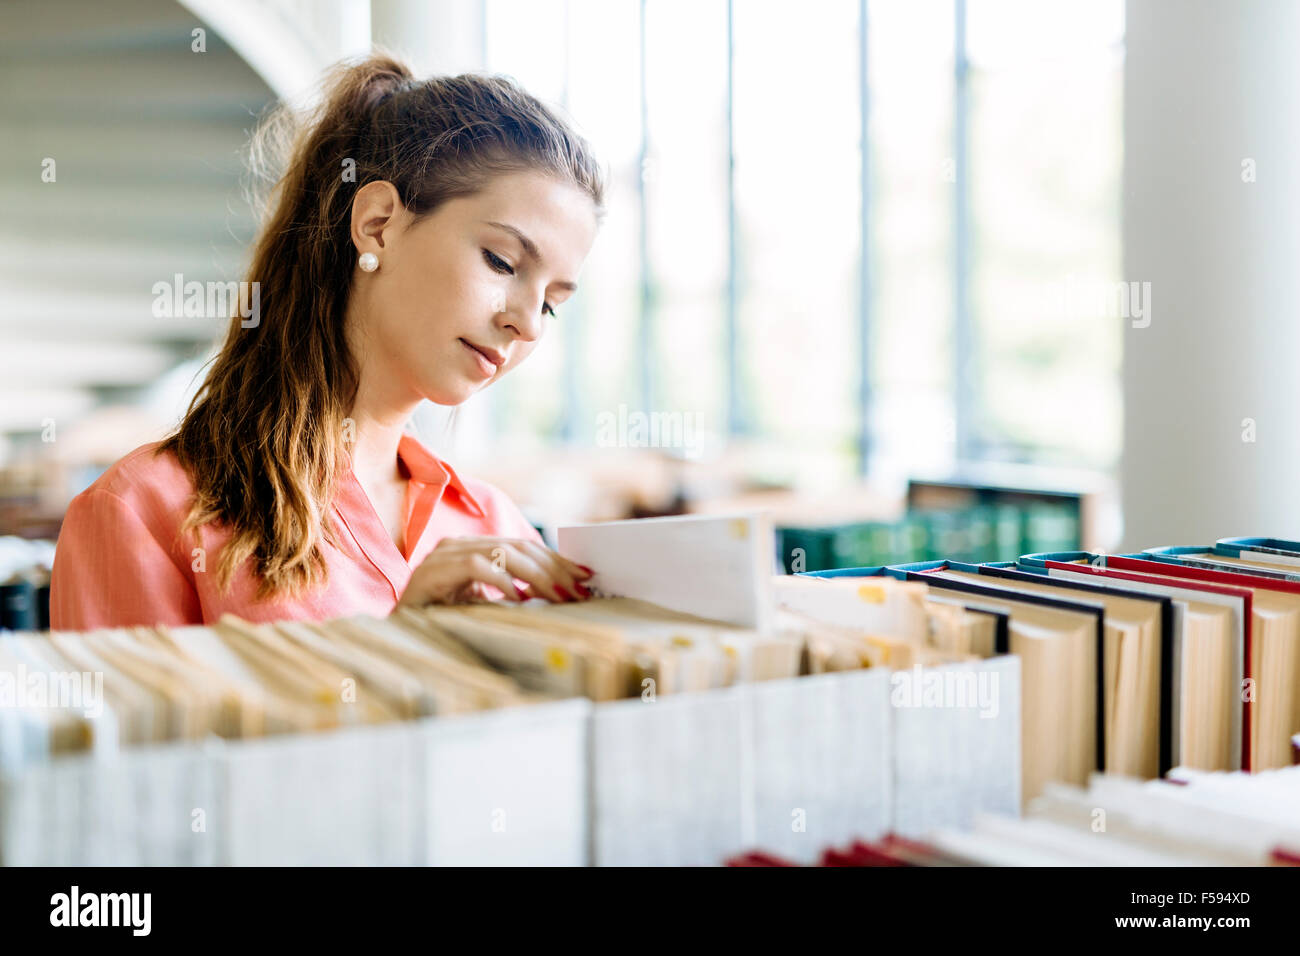 Beautiful female student takes the right book off the shelf - Stock Image